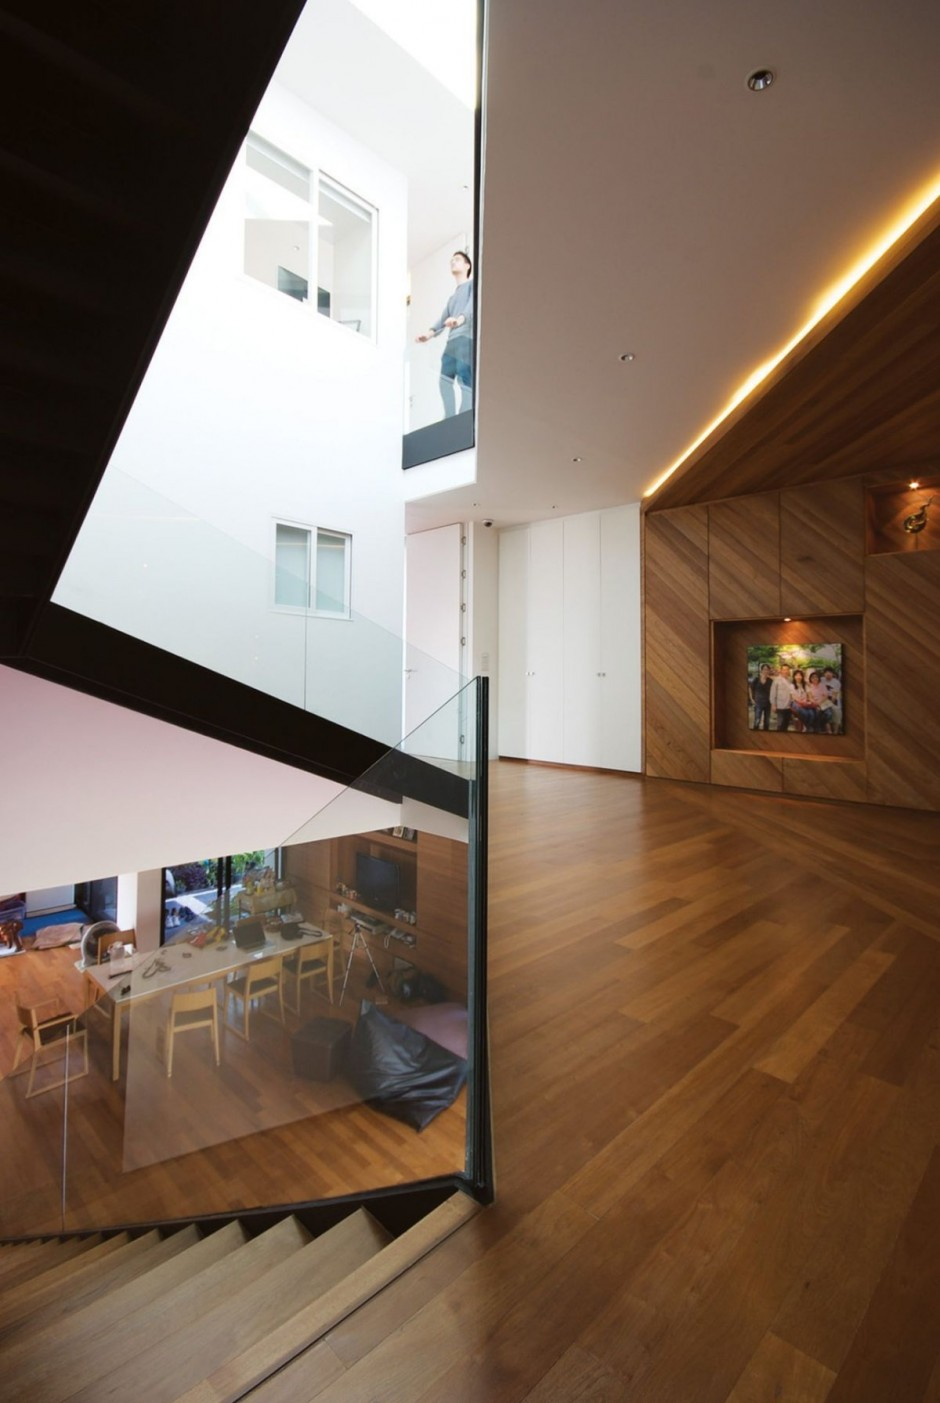 Enhanced with Dark Wooden Floor White Painted Wall and Transparent Glass Wall